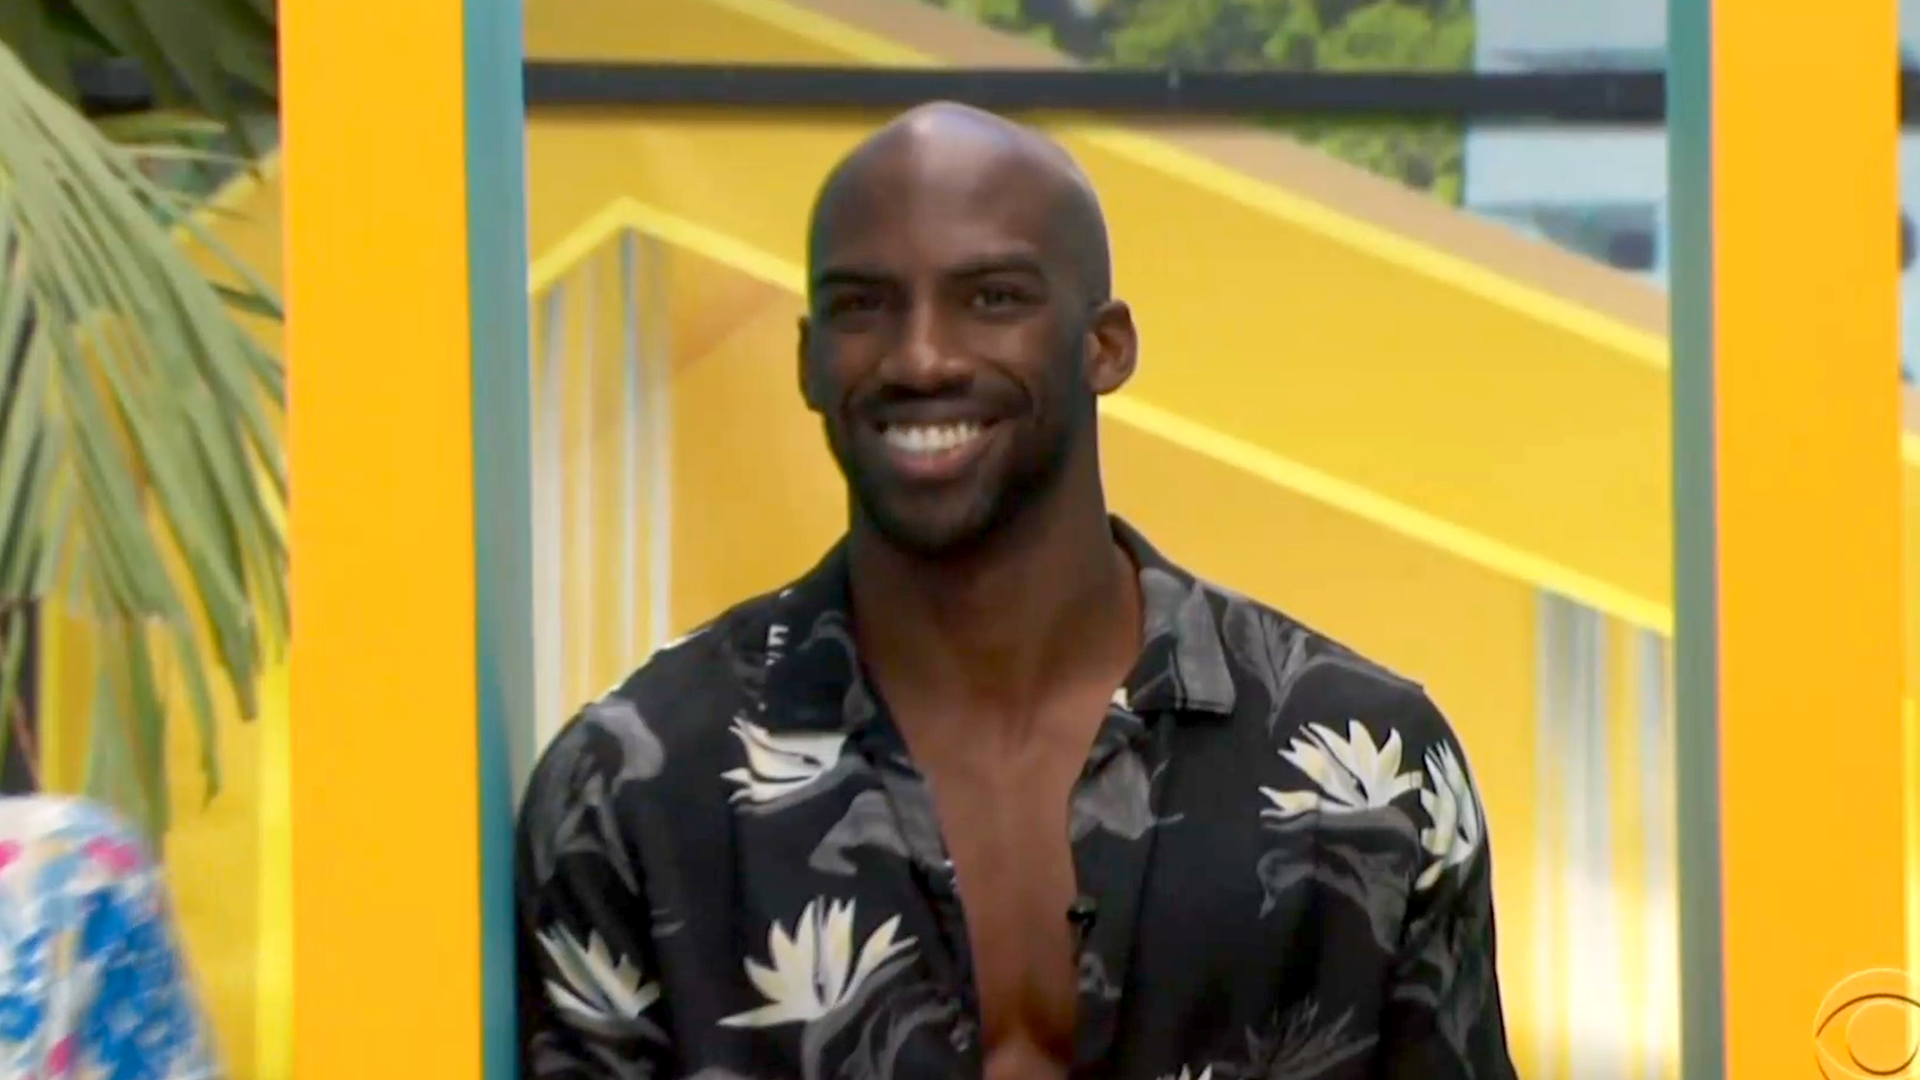 'Big Brother' fans are celebrating a historic night following live eviction